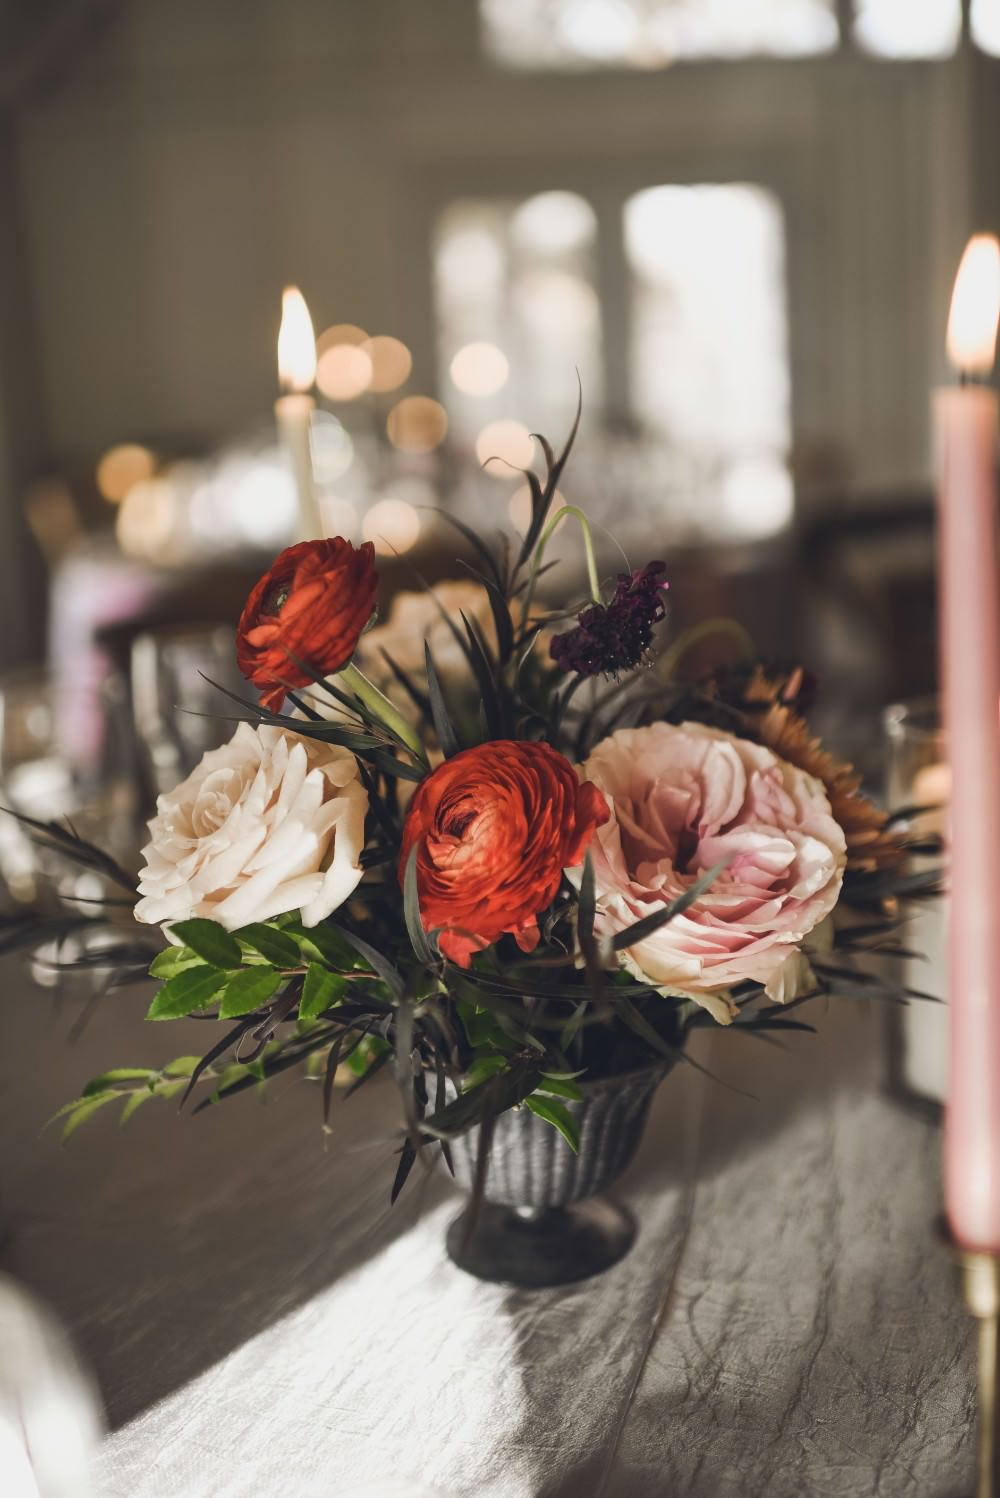 Table Flowers Centrepiece Decor Pink Red Kindred Barn Wedding The Kindred Collective